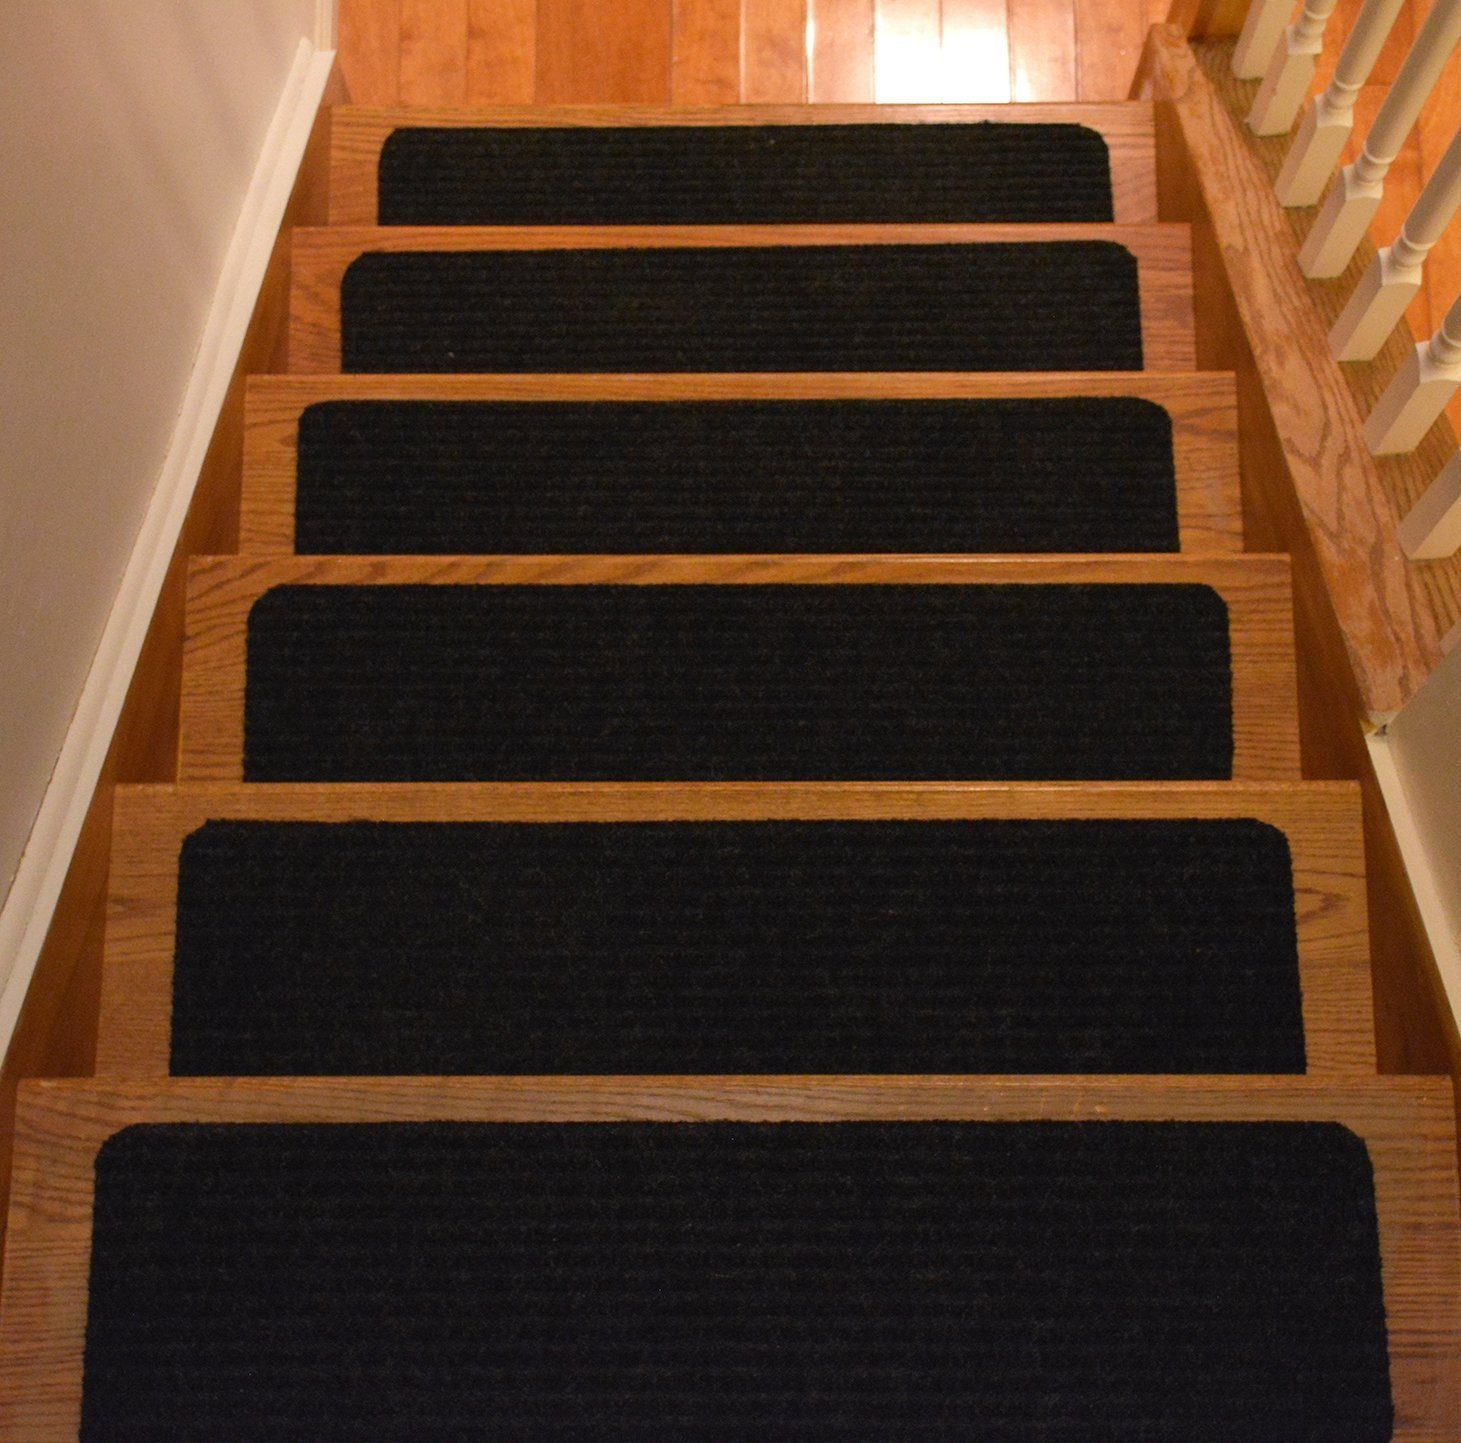 Flooring Stair Treads Carpet Stair Tread Rug Carpet Tread For With Regard To Rectangular Stair Tread Rugs (#16 of 20)